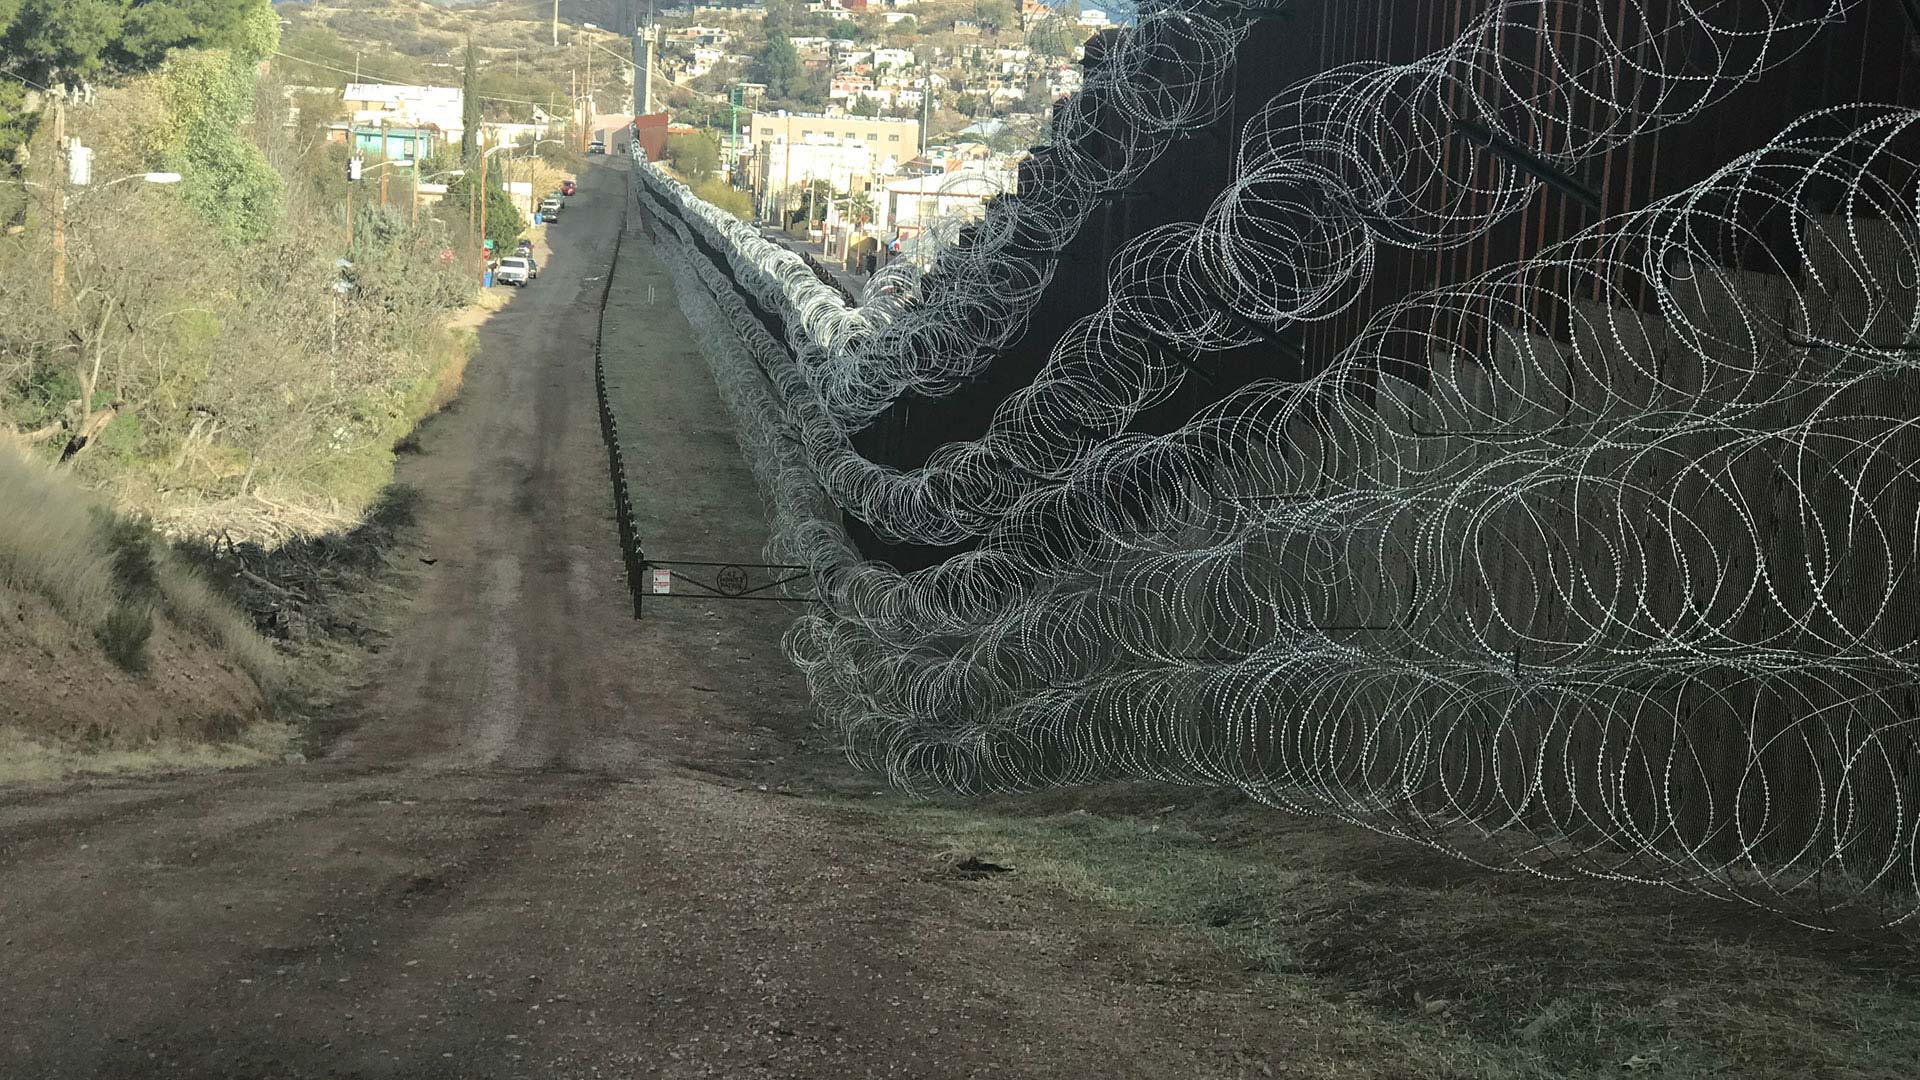 Five additional rows of concertina wire added to border fence in Nogales, Arizona, by U.S. Army soldiers, Feb. 6, 2019.